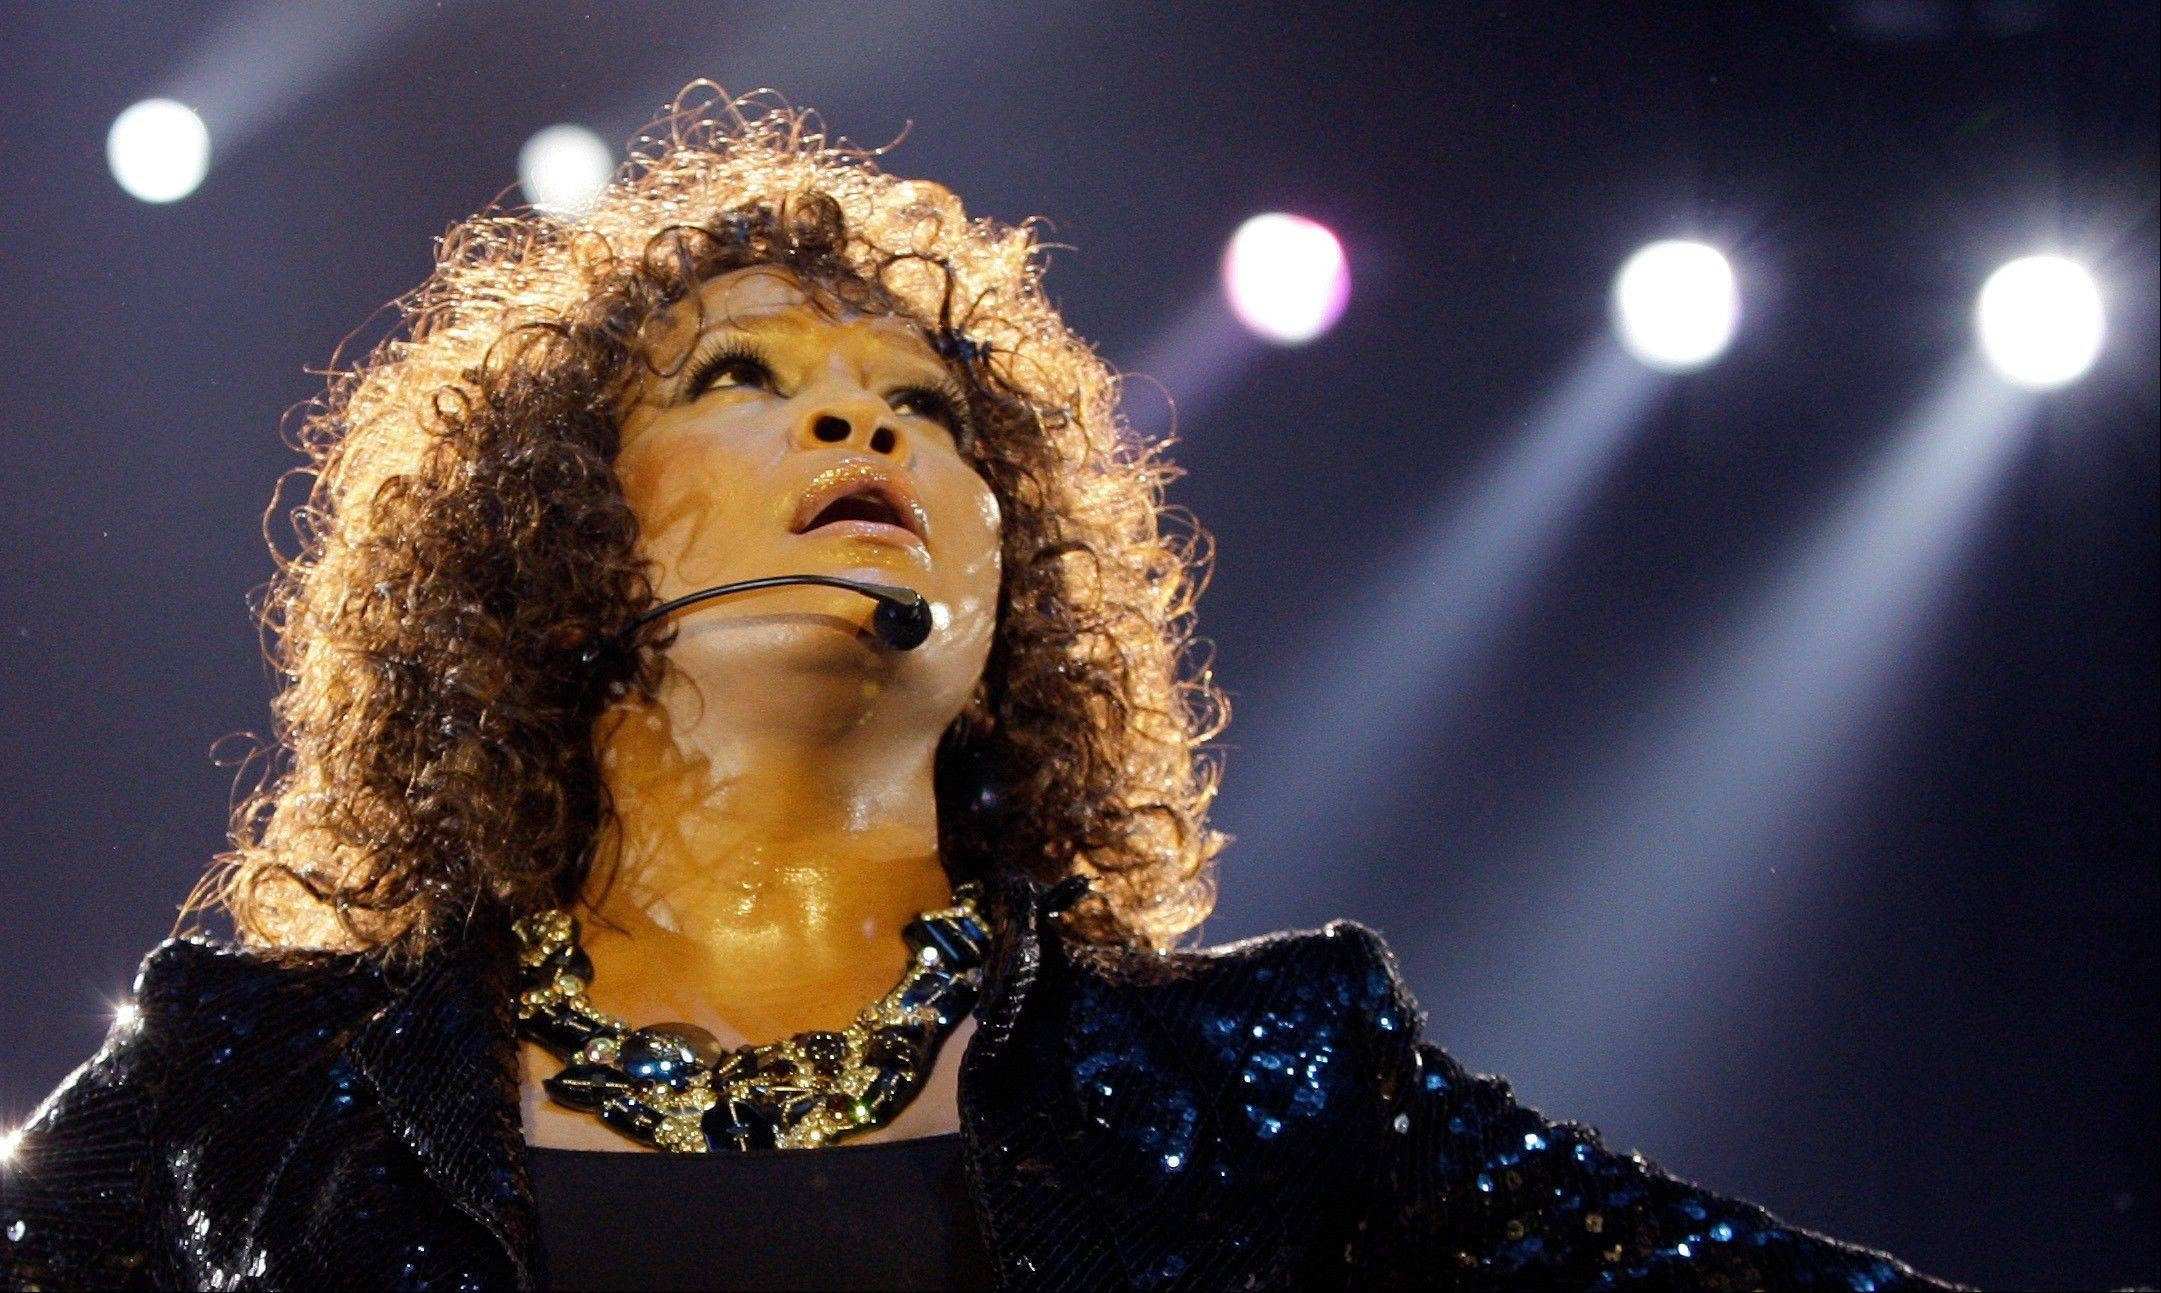 Singer Whitney Houston, who ruled as pop music's queen until her voice was ravaged by drug use and her image ruined by erratic behavior and a tumultuous marriage to Bobby Brown, died Feb. 11. She was 48